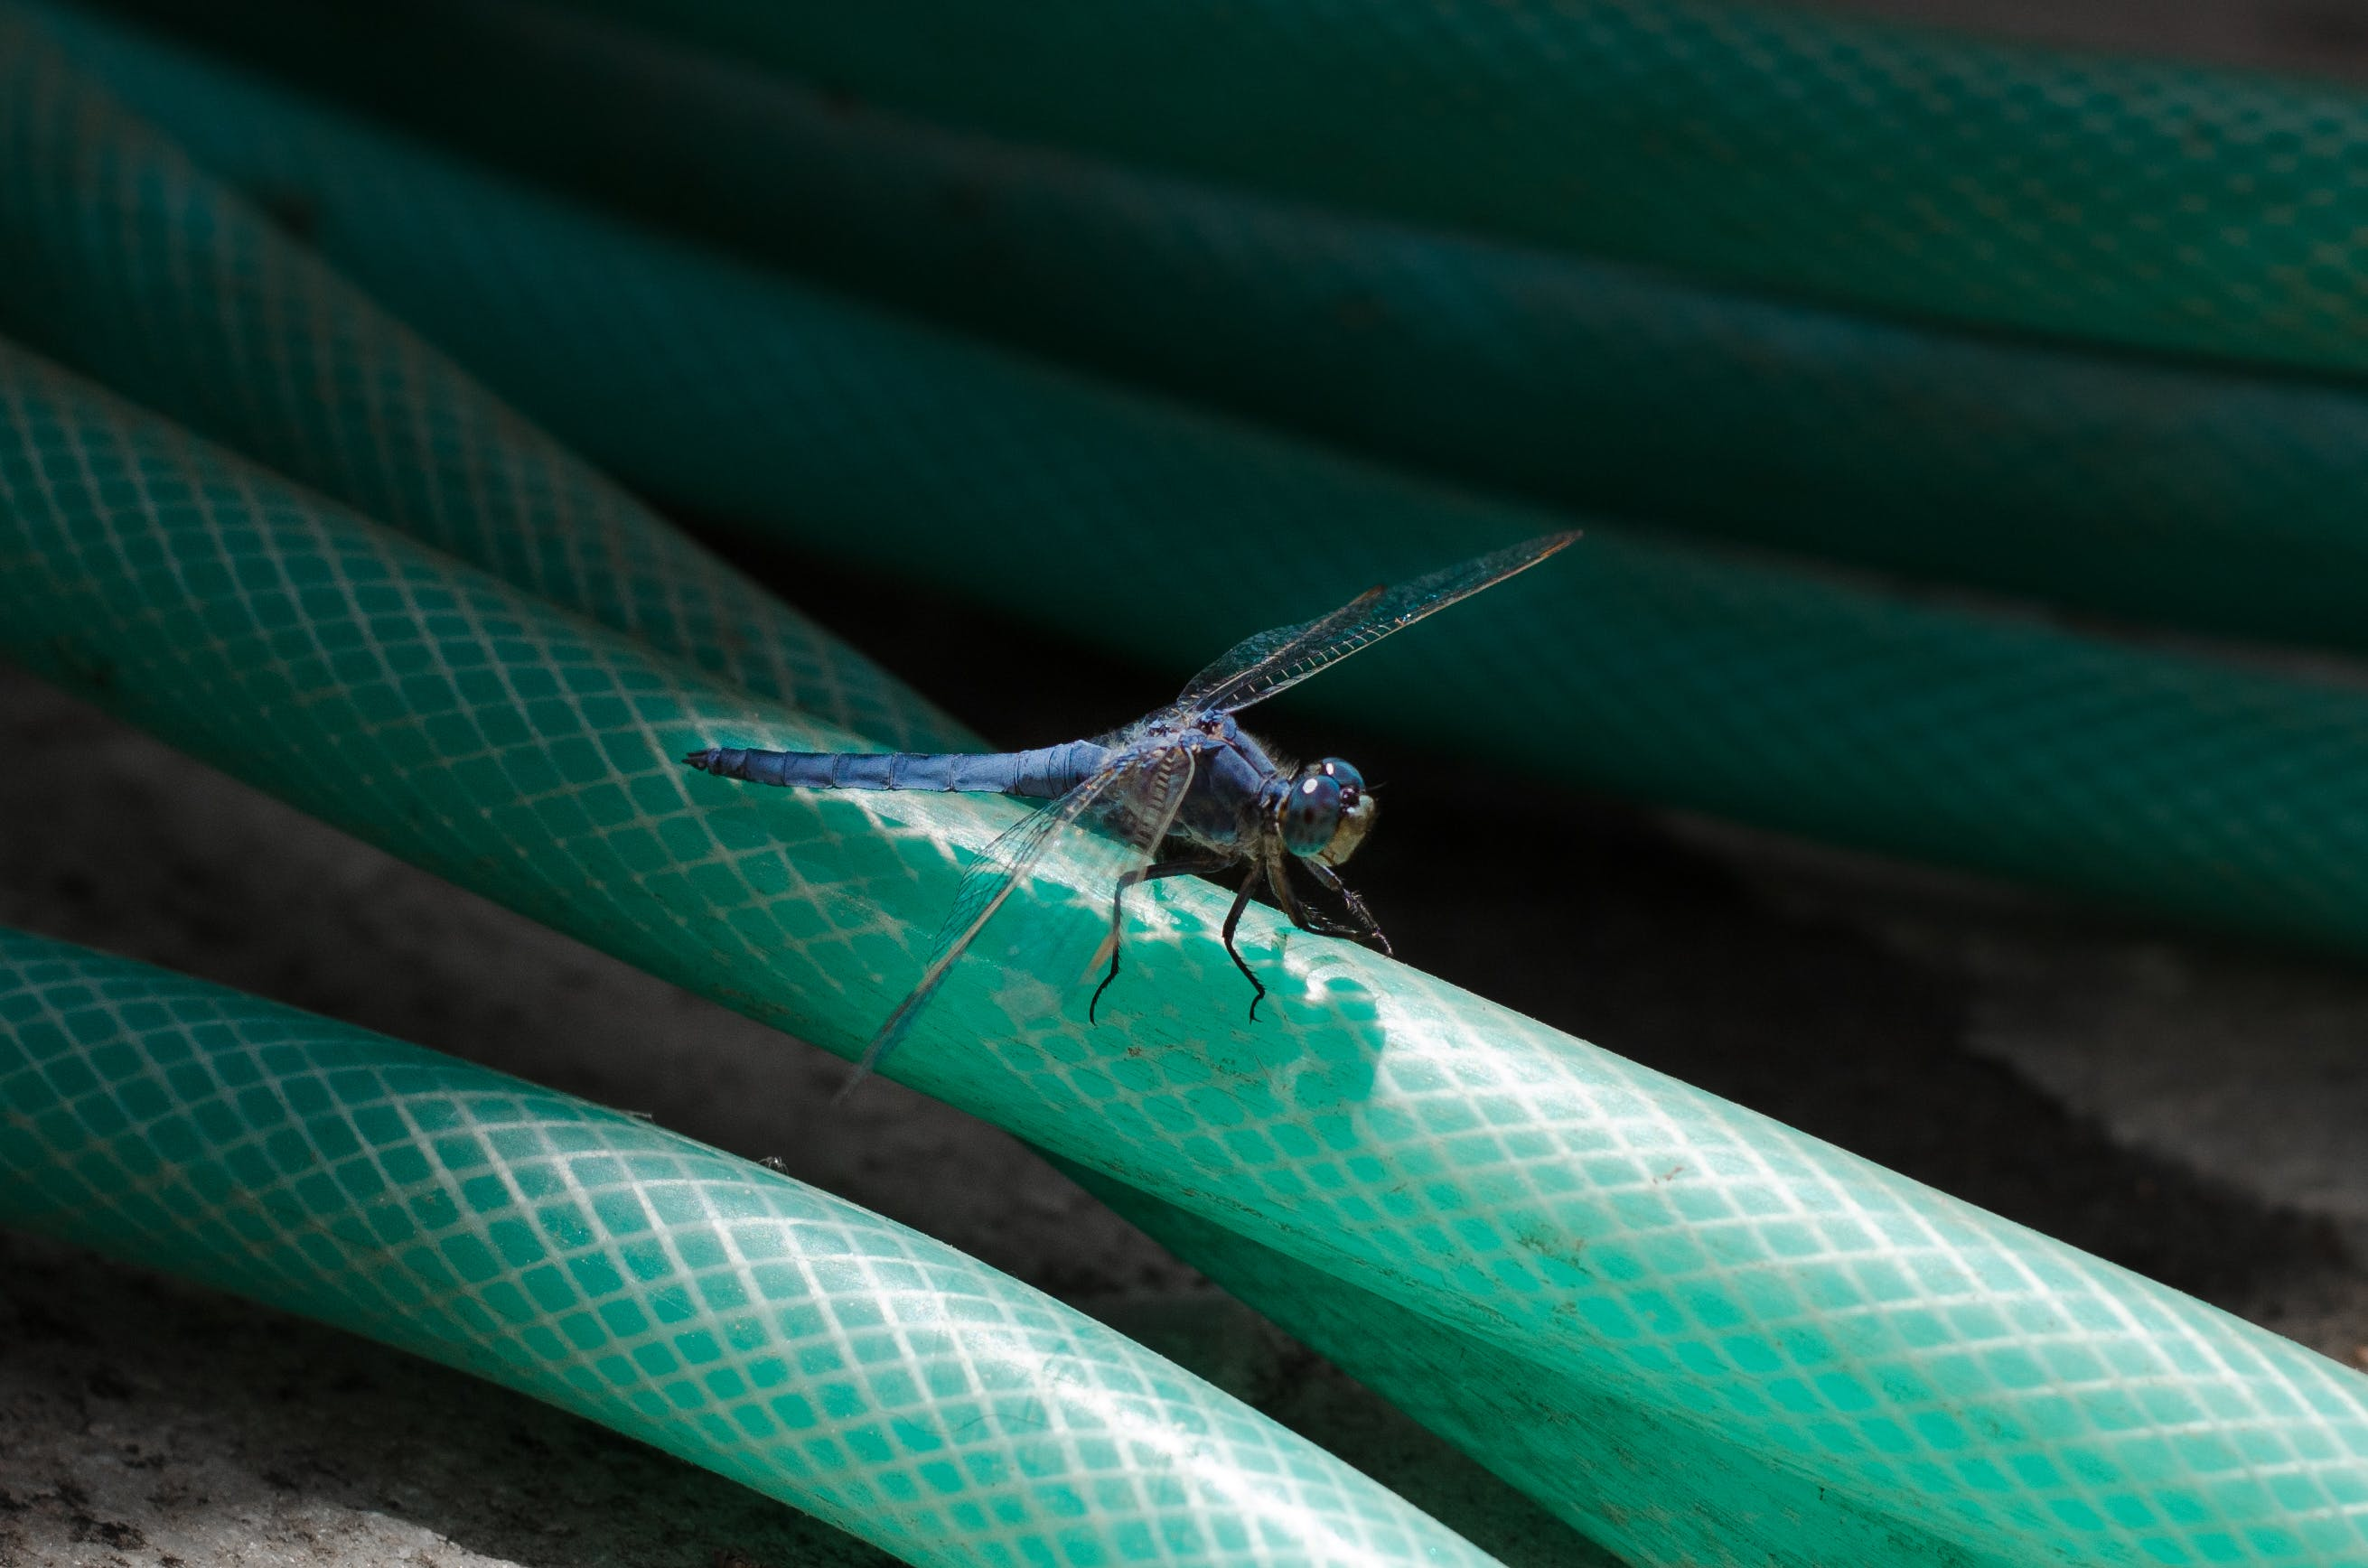 Free stock photo of insect, insects, nature